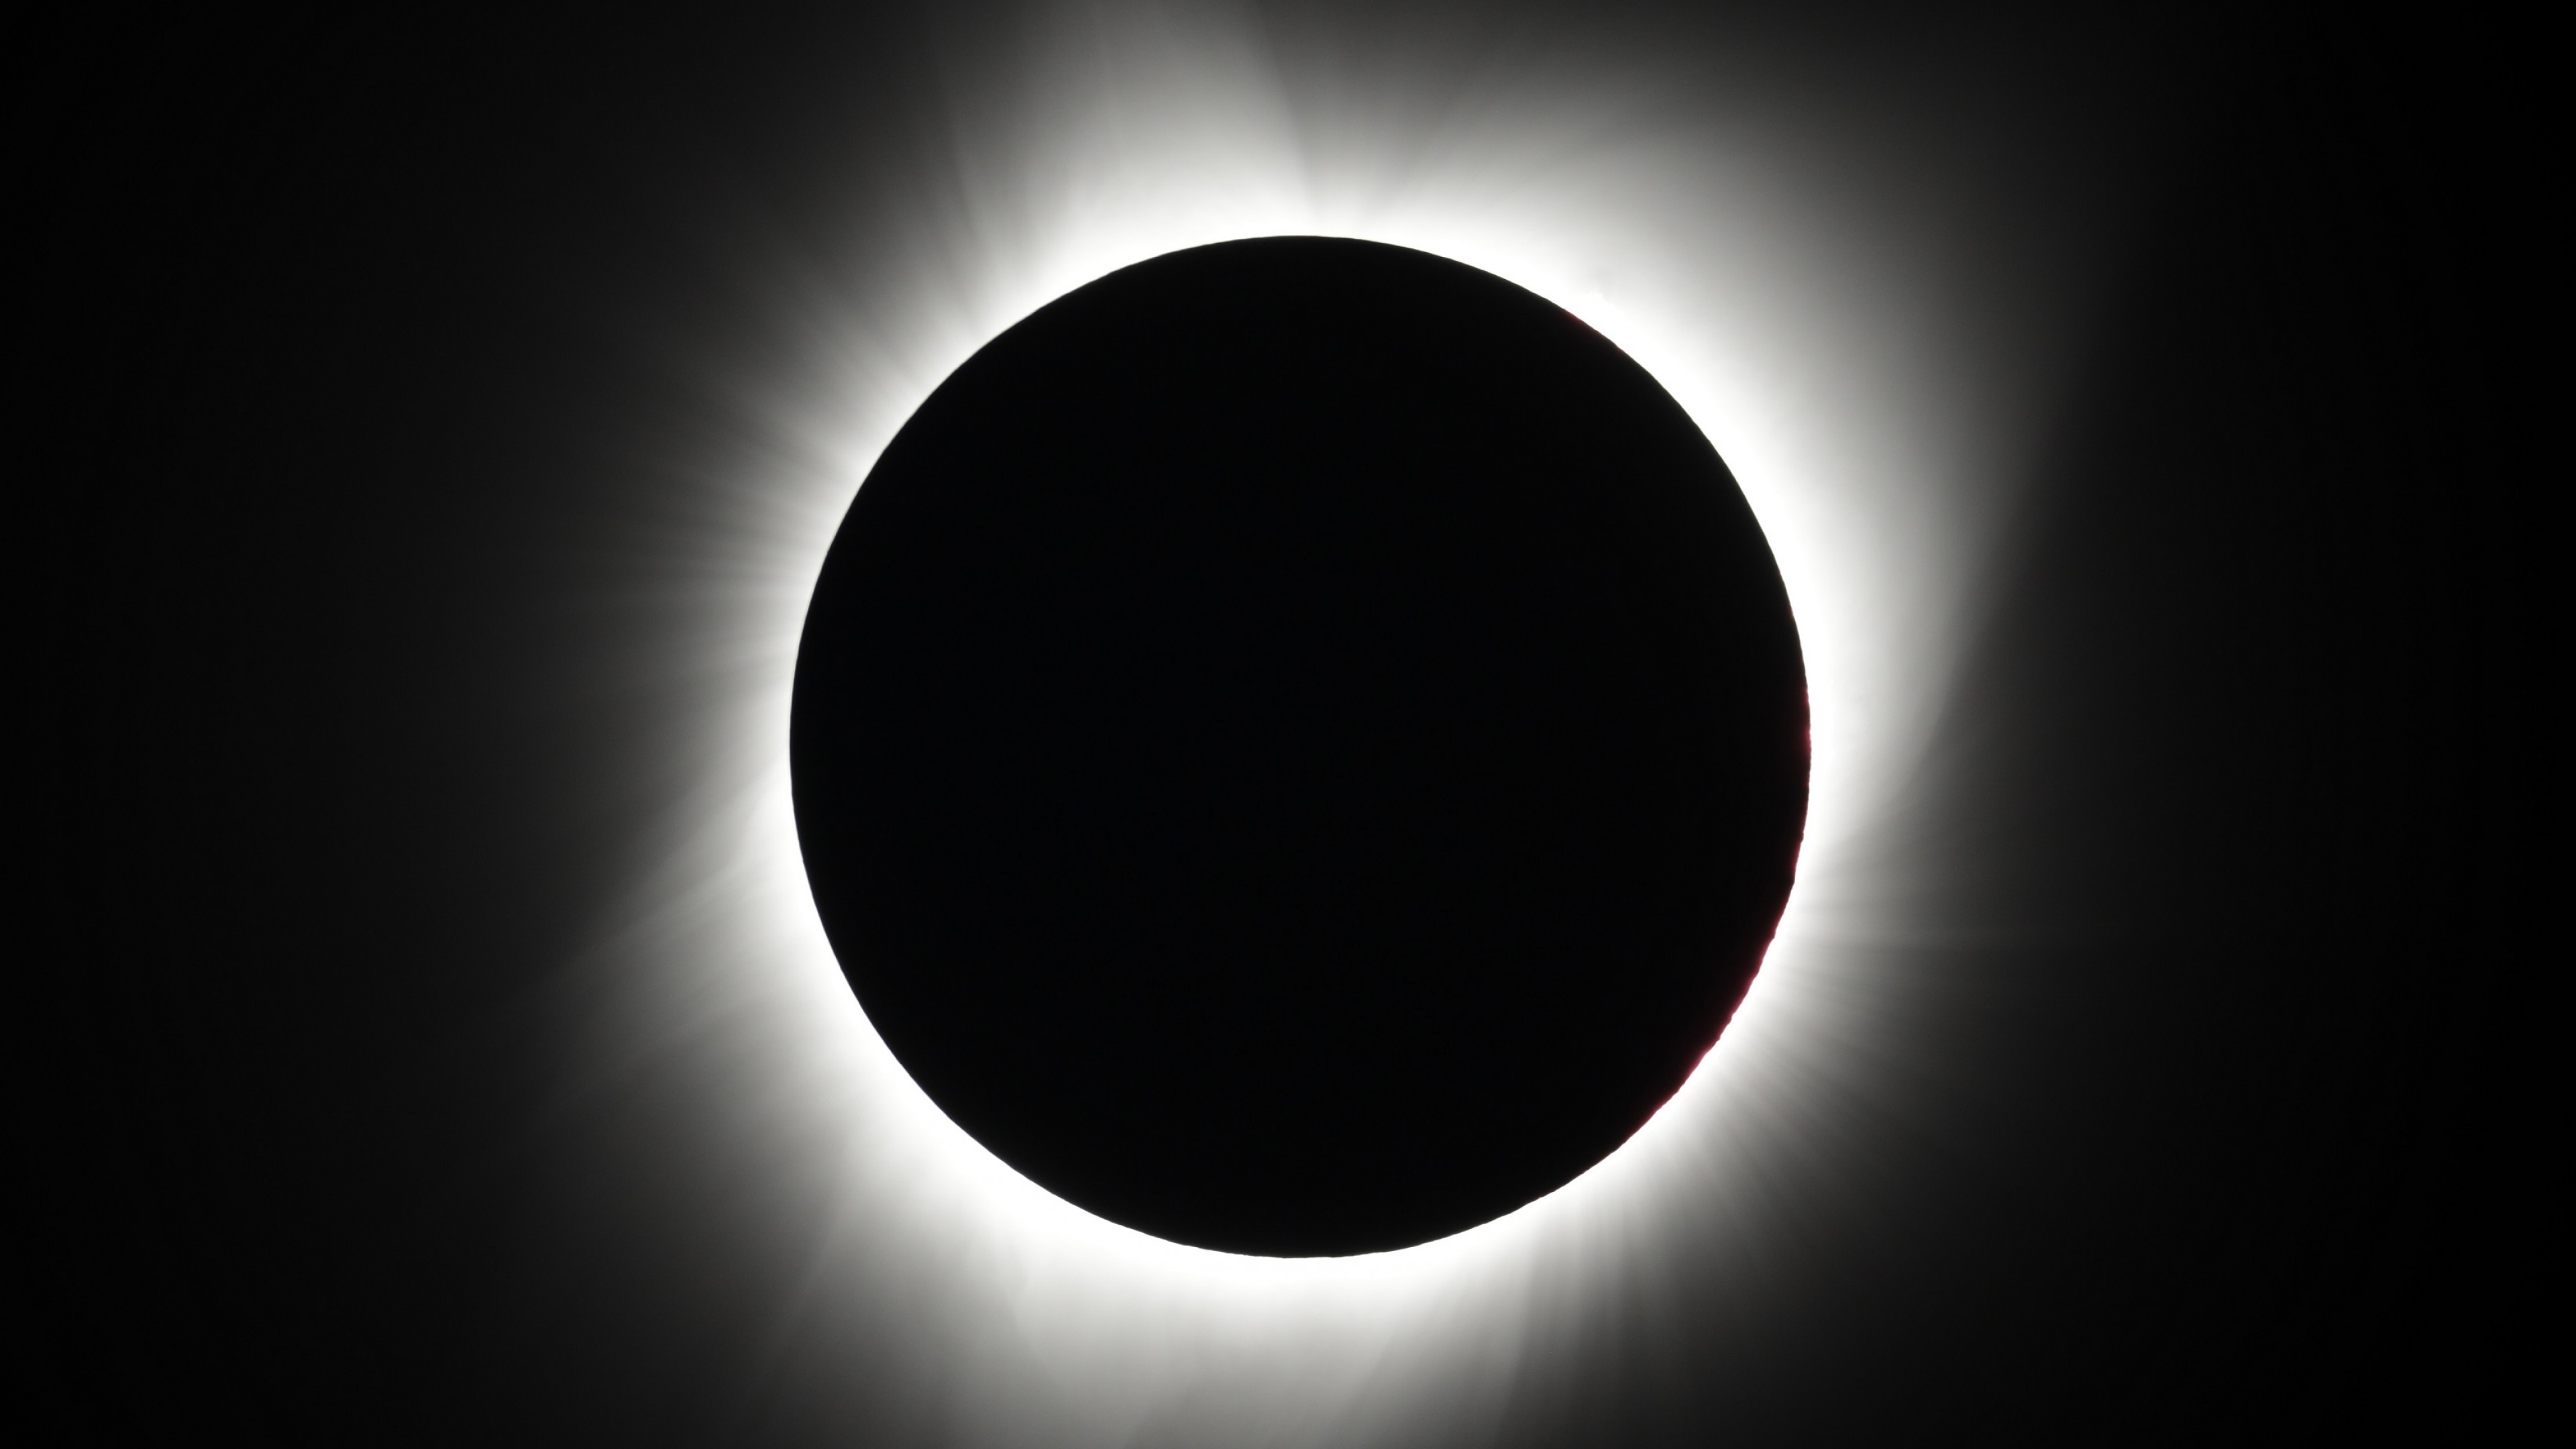 Wallpaper Total Solar Eclipse Of Aug 21 2017 Great American